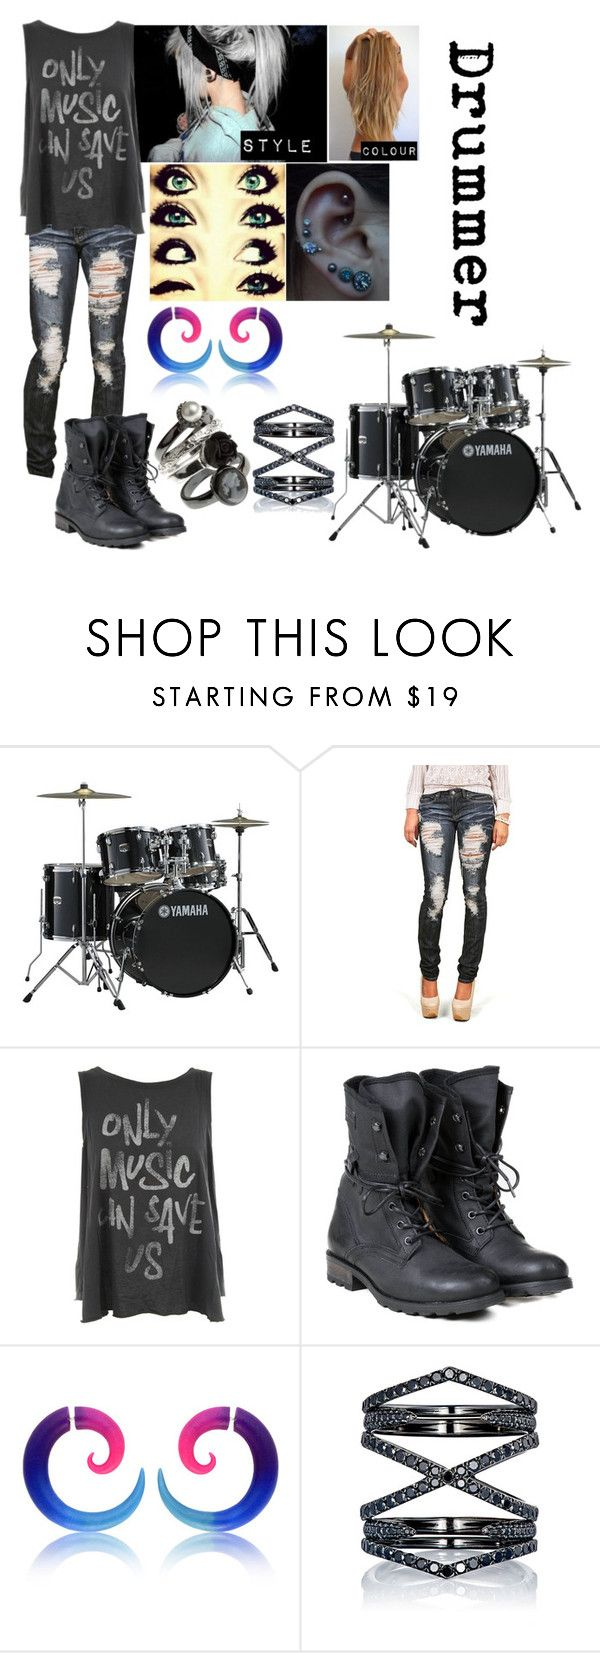 """Punk Rock Band - Drummer"" by blackest-raven ❤ liked on Polyvore featuring Yamaha, Junk Food Clothing, PLDM by Palladium and Eva Fehren"